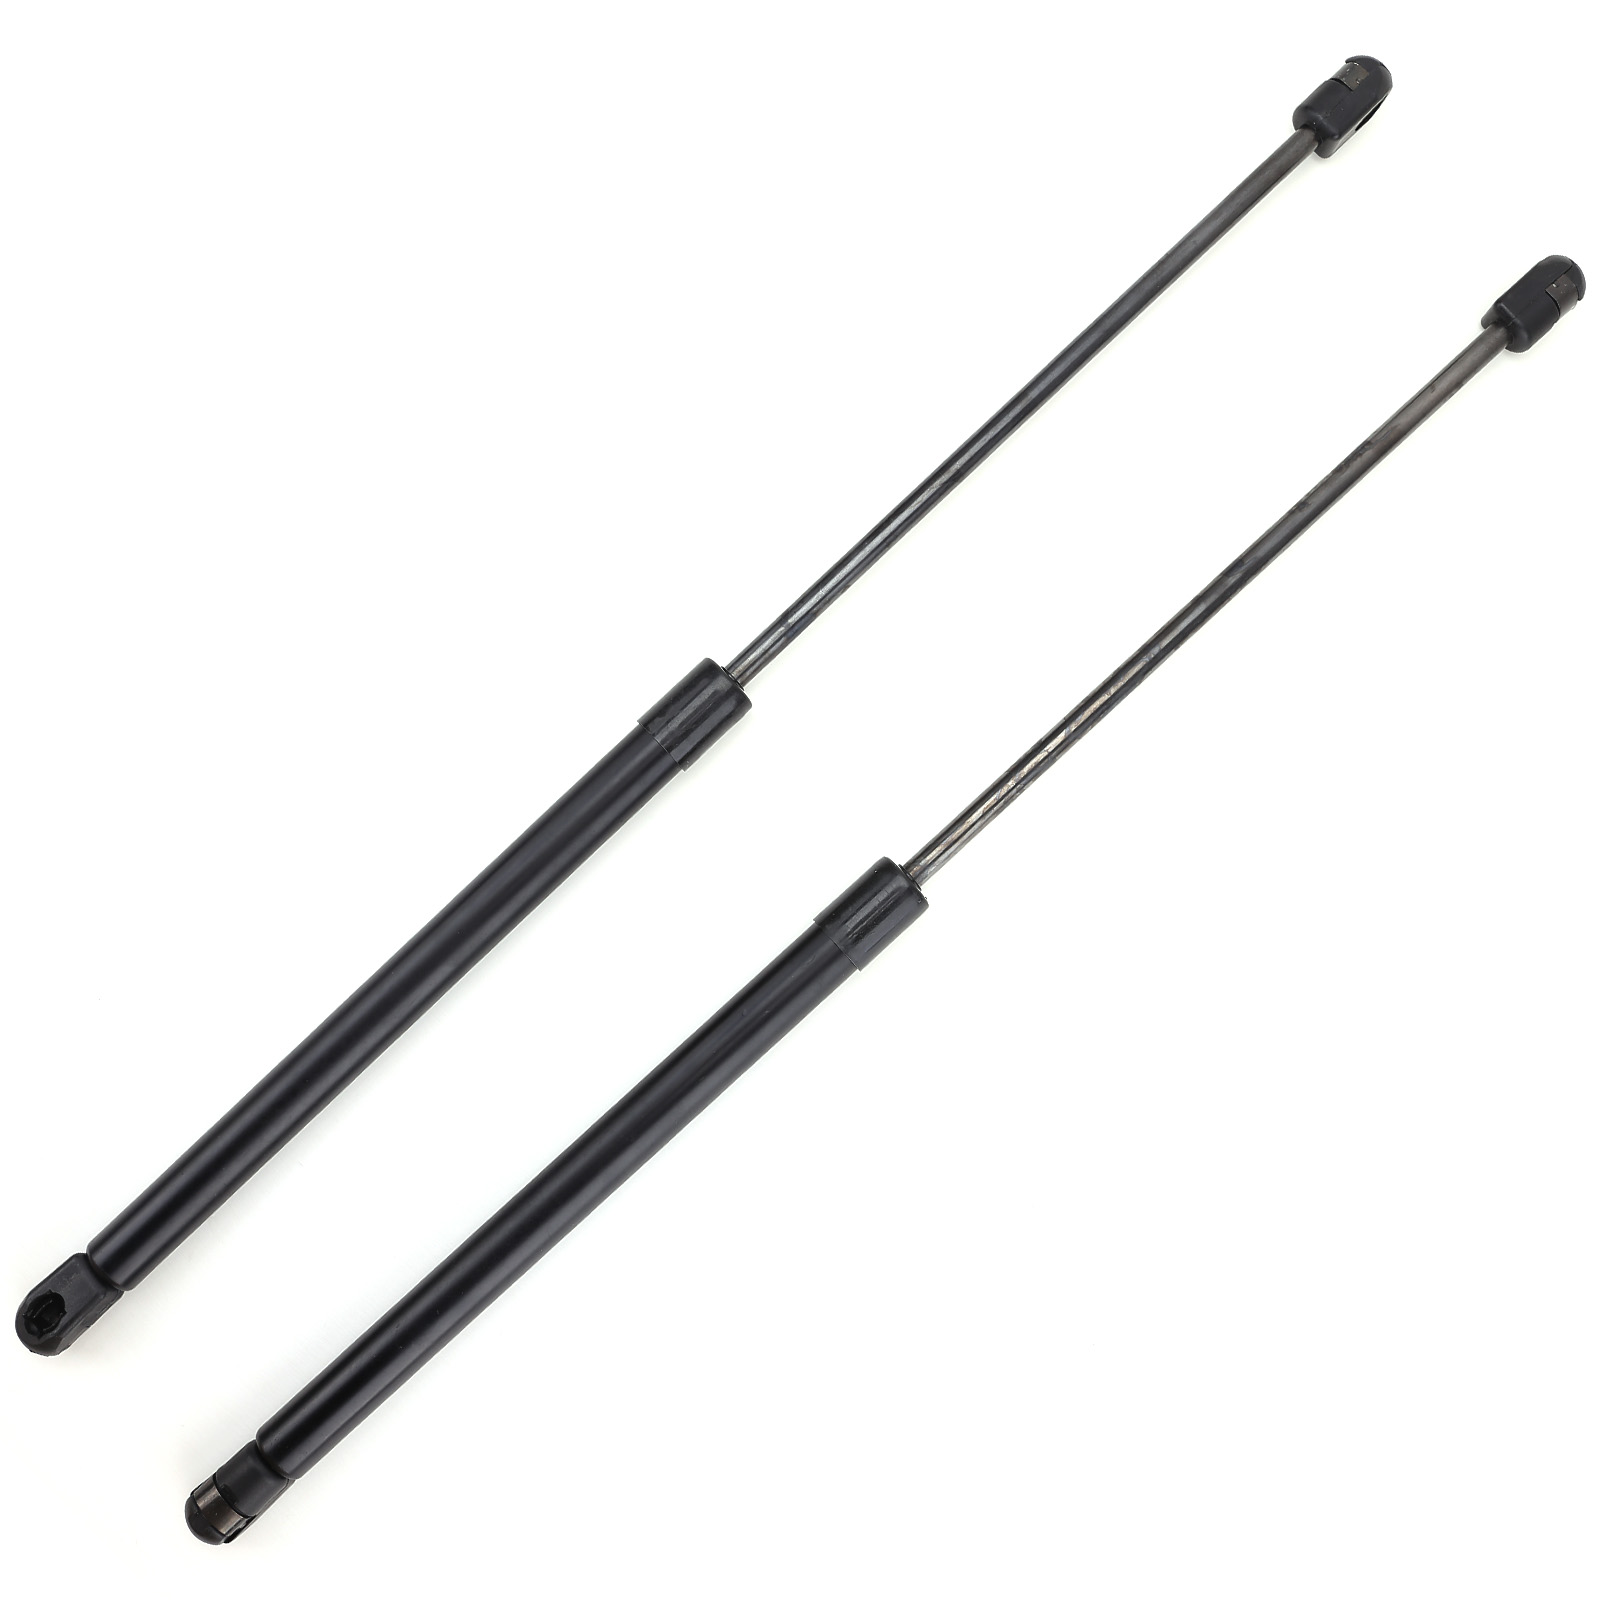 2x Gas Tailgate Struts Boot Holder Lifter For Peugeot 307